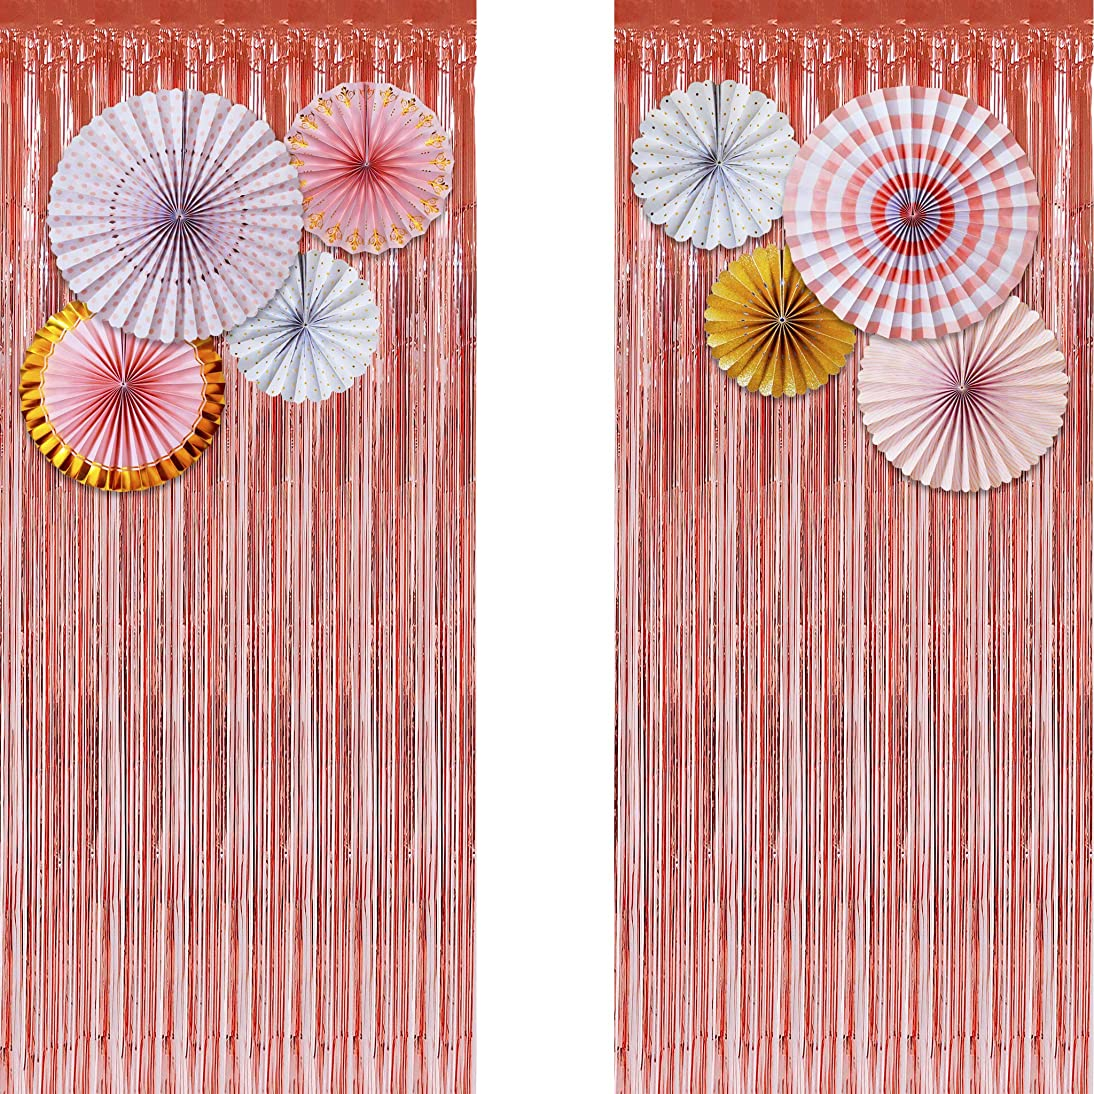 Rose Gold Metallic Tinsel Foil Fringe Curtains (Set of 2) - Party Photo Booth Backdrop + 8 Paper Fans Flower Hanging Banner - Party Decorations Supplies Set for Bachelorette Birthday Bridal Shower